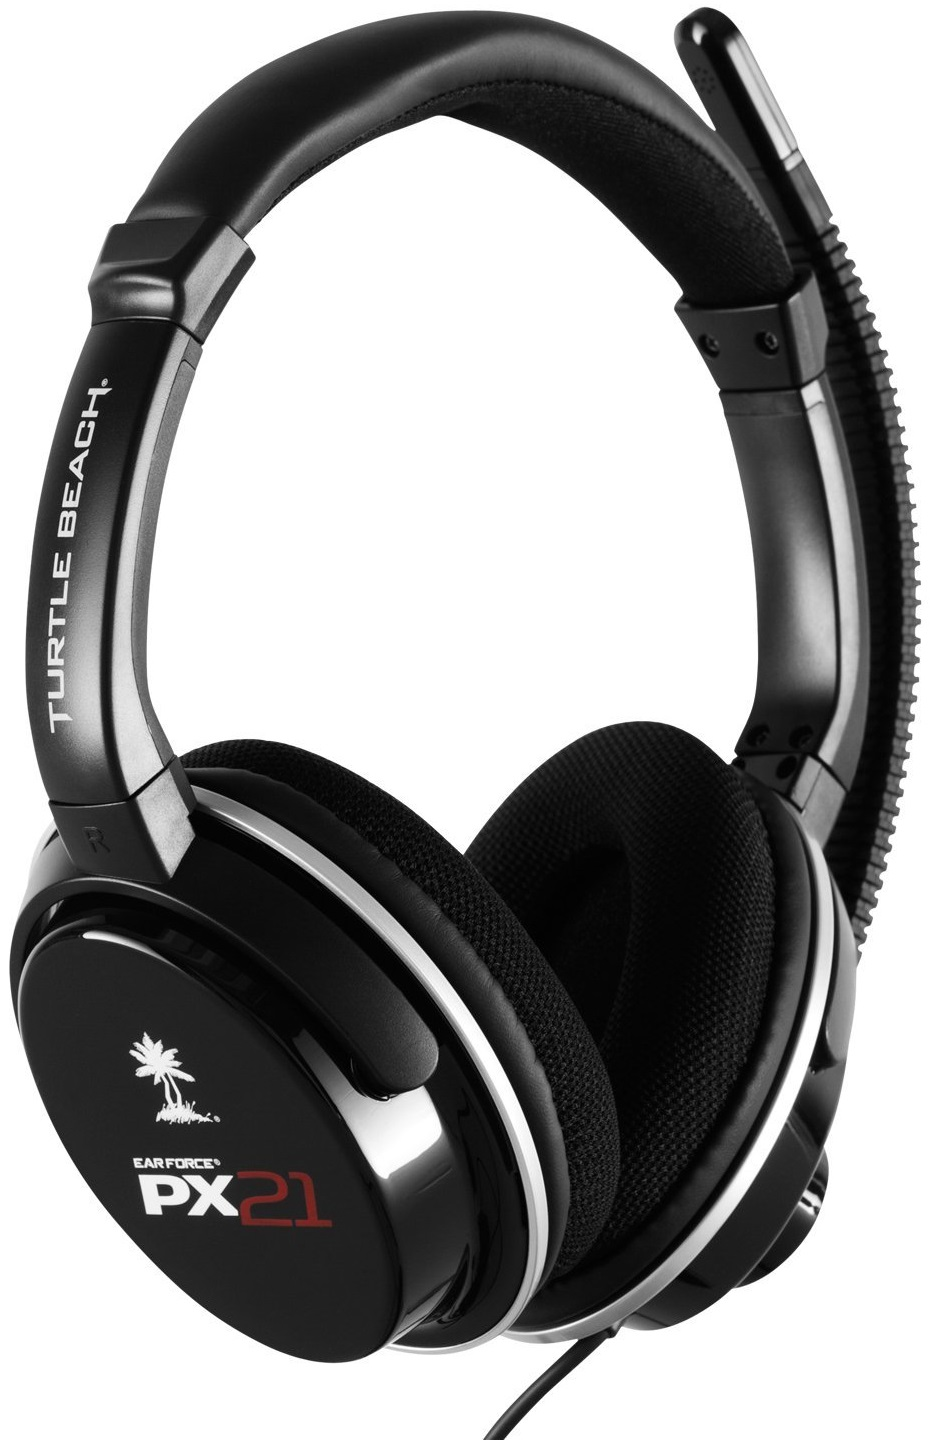 Turtle Beach Headset Ps Ebay